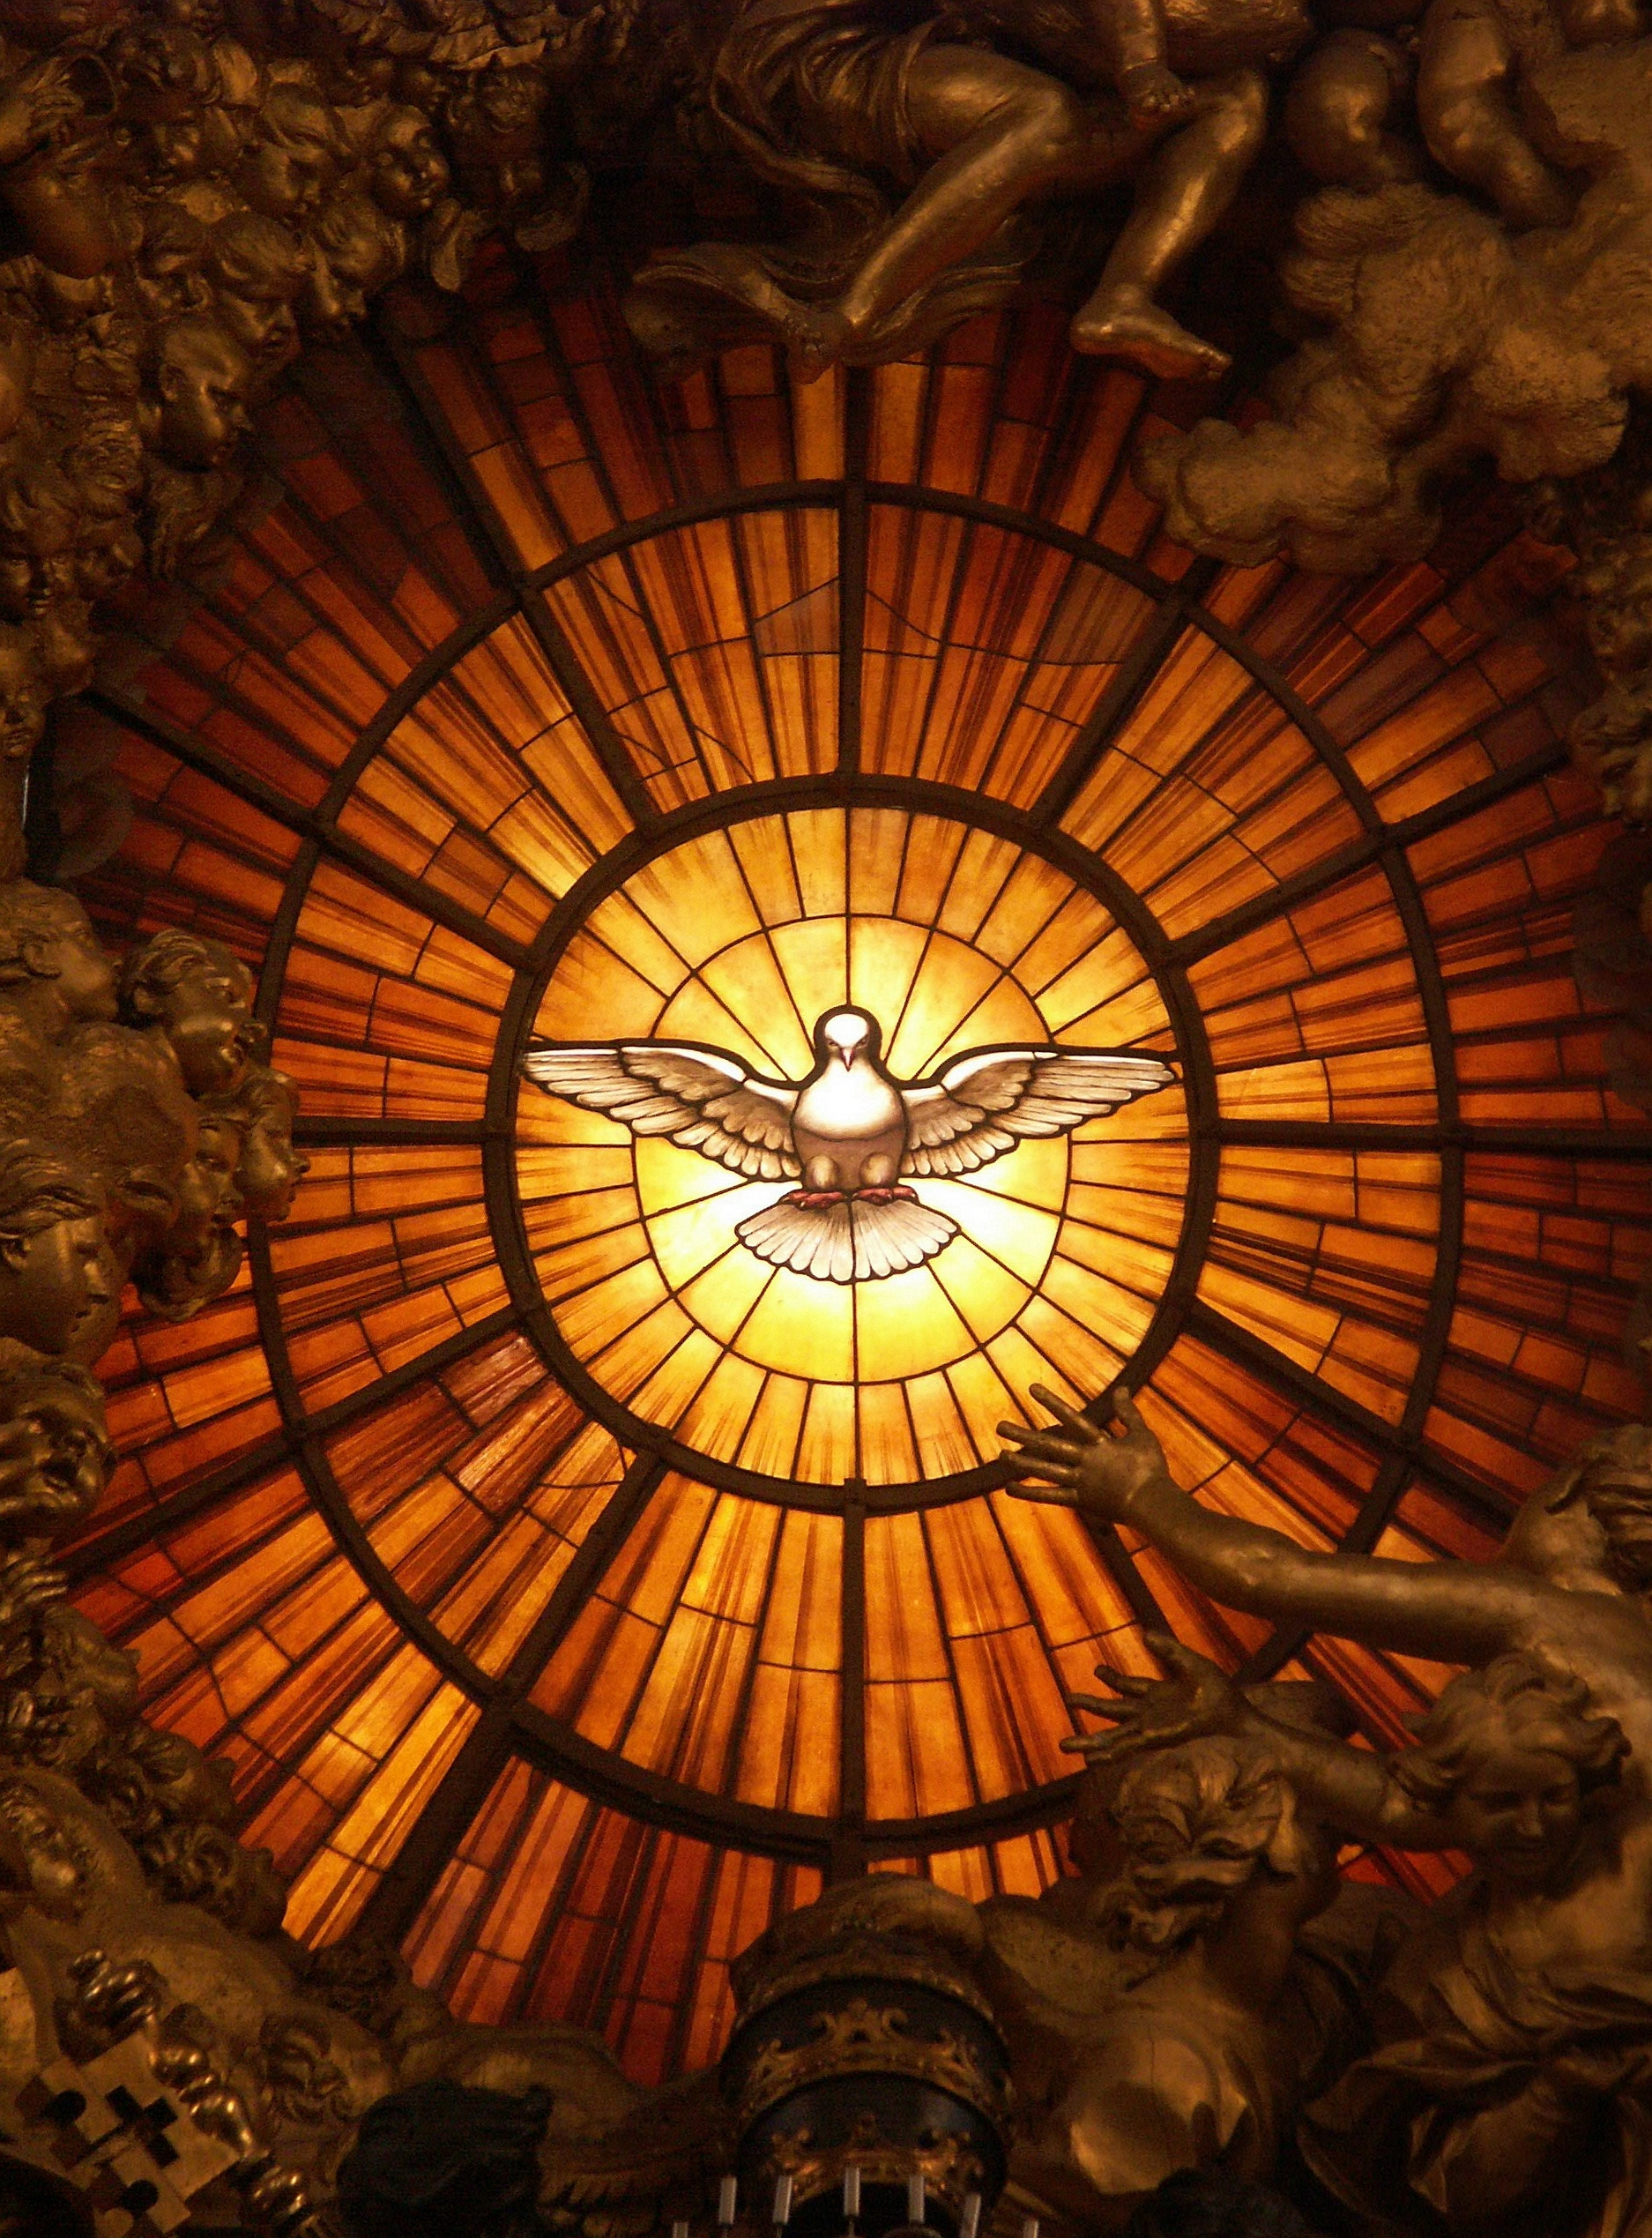 Gian Lorenzo Bernini - Dove of the Holy Spirit (ca. 1660, stained glass, Throne of St. Peter, St. Peter's Basilica, Vatican). Wikimedia Commons